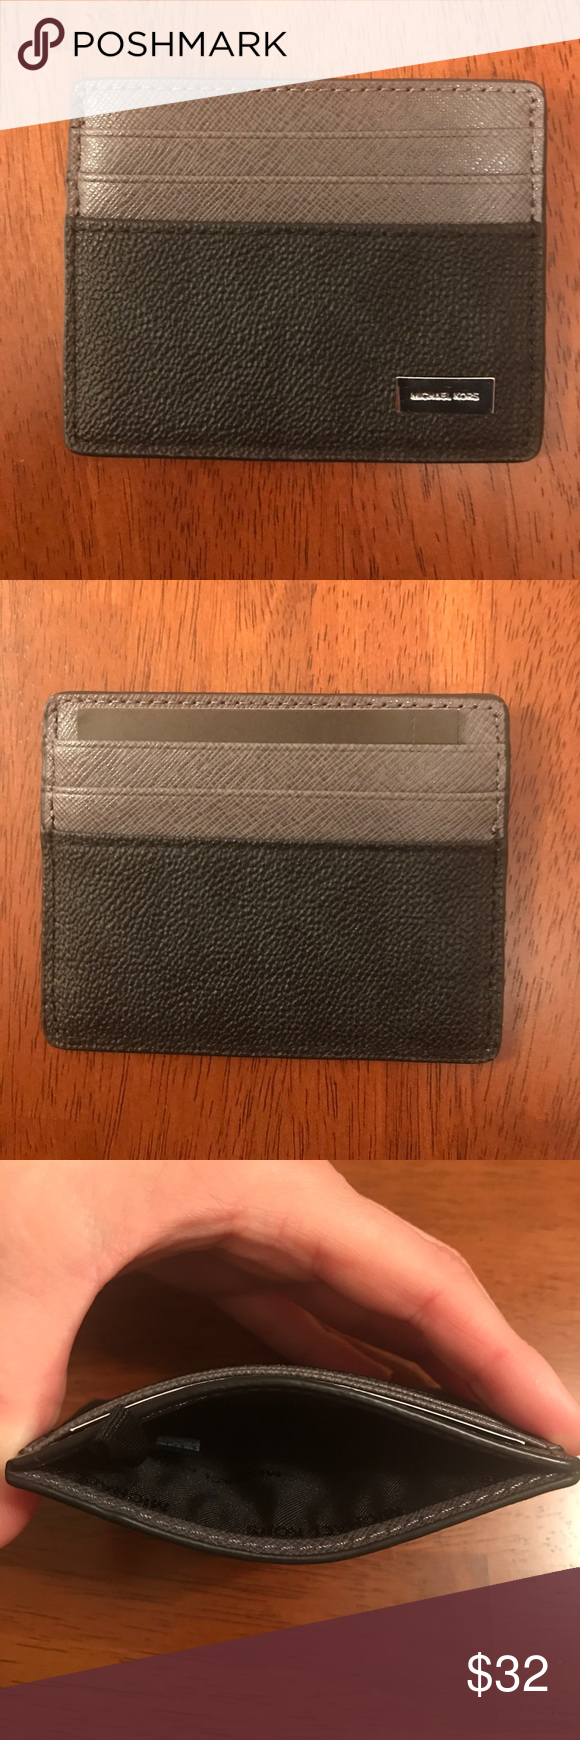 fb92845dd8433 NWT  Michael Kors Men s Jet Set Card Holder This is a brand new ...